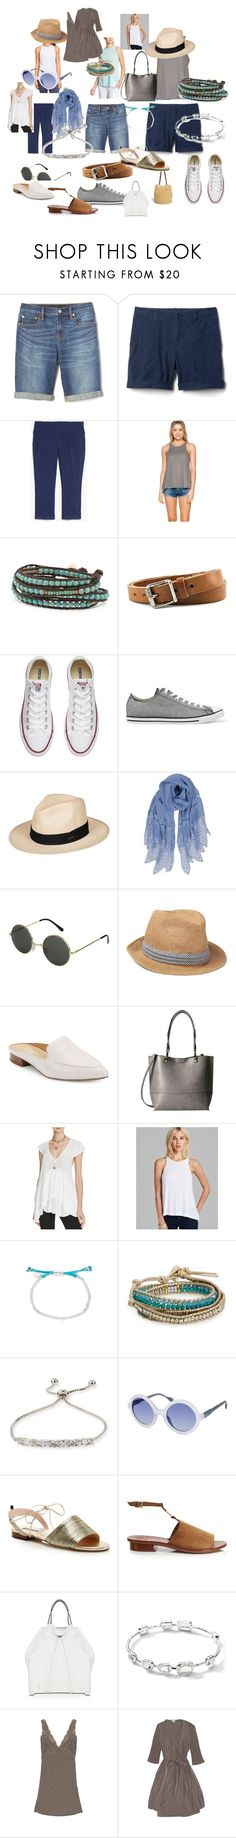 """Pack Day"" by sally-lewis on Polyvore featuring New Balance, Dsquared2, Athleta, Converse, Roxy, Humble Chic, Lord & Taylor, Calvin Klein, Free People and Gorjana"